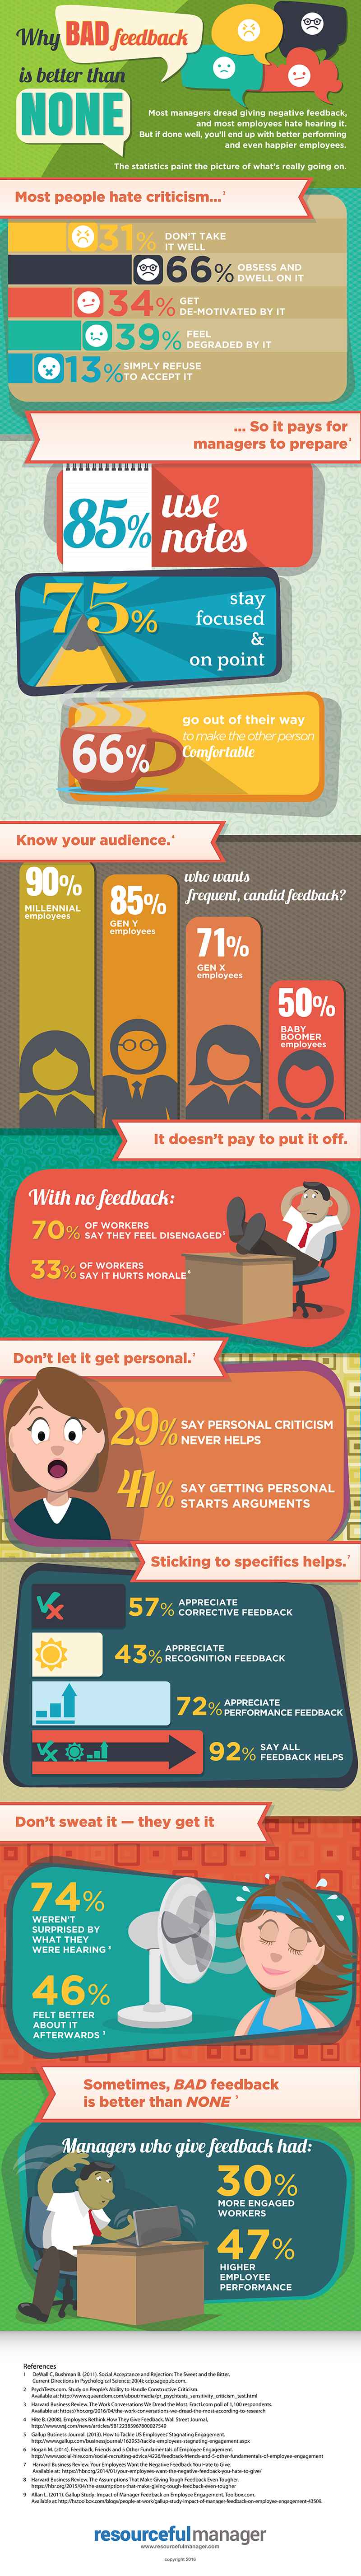 bad-feedback-better-infographic.png